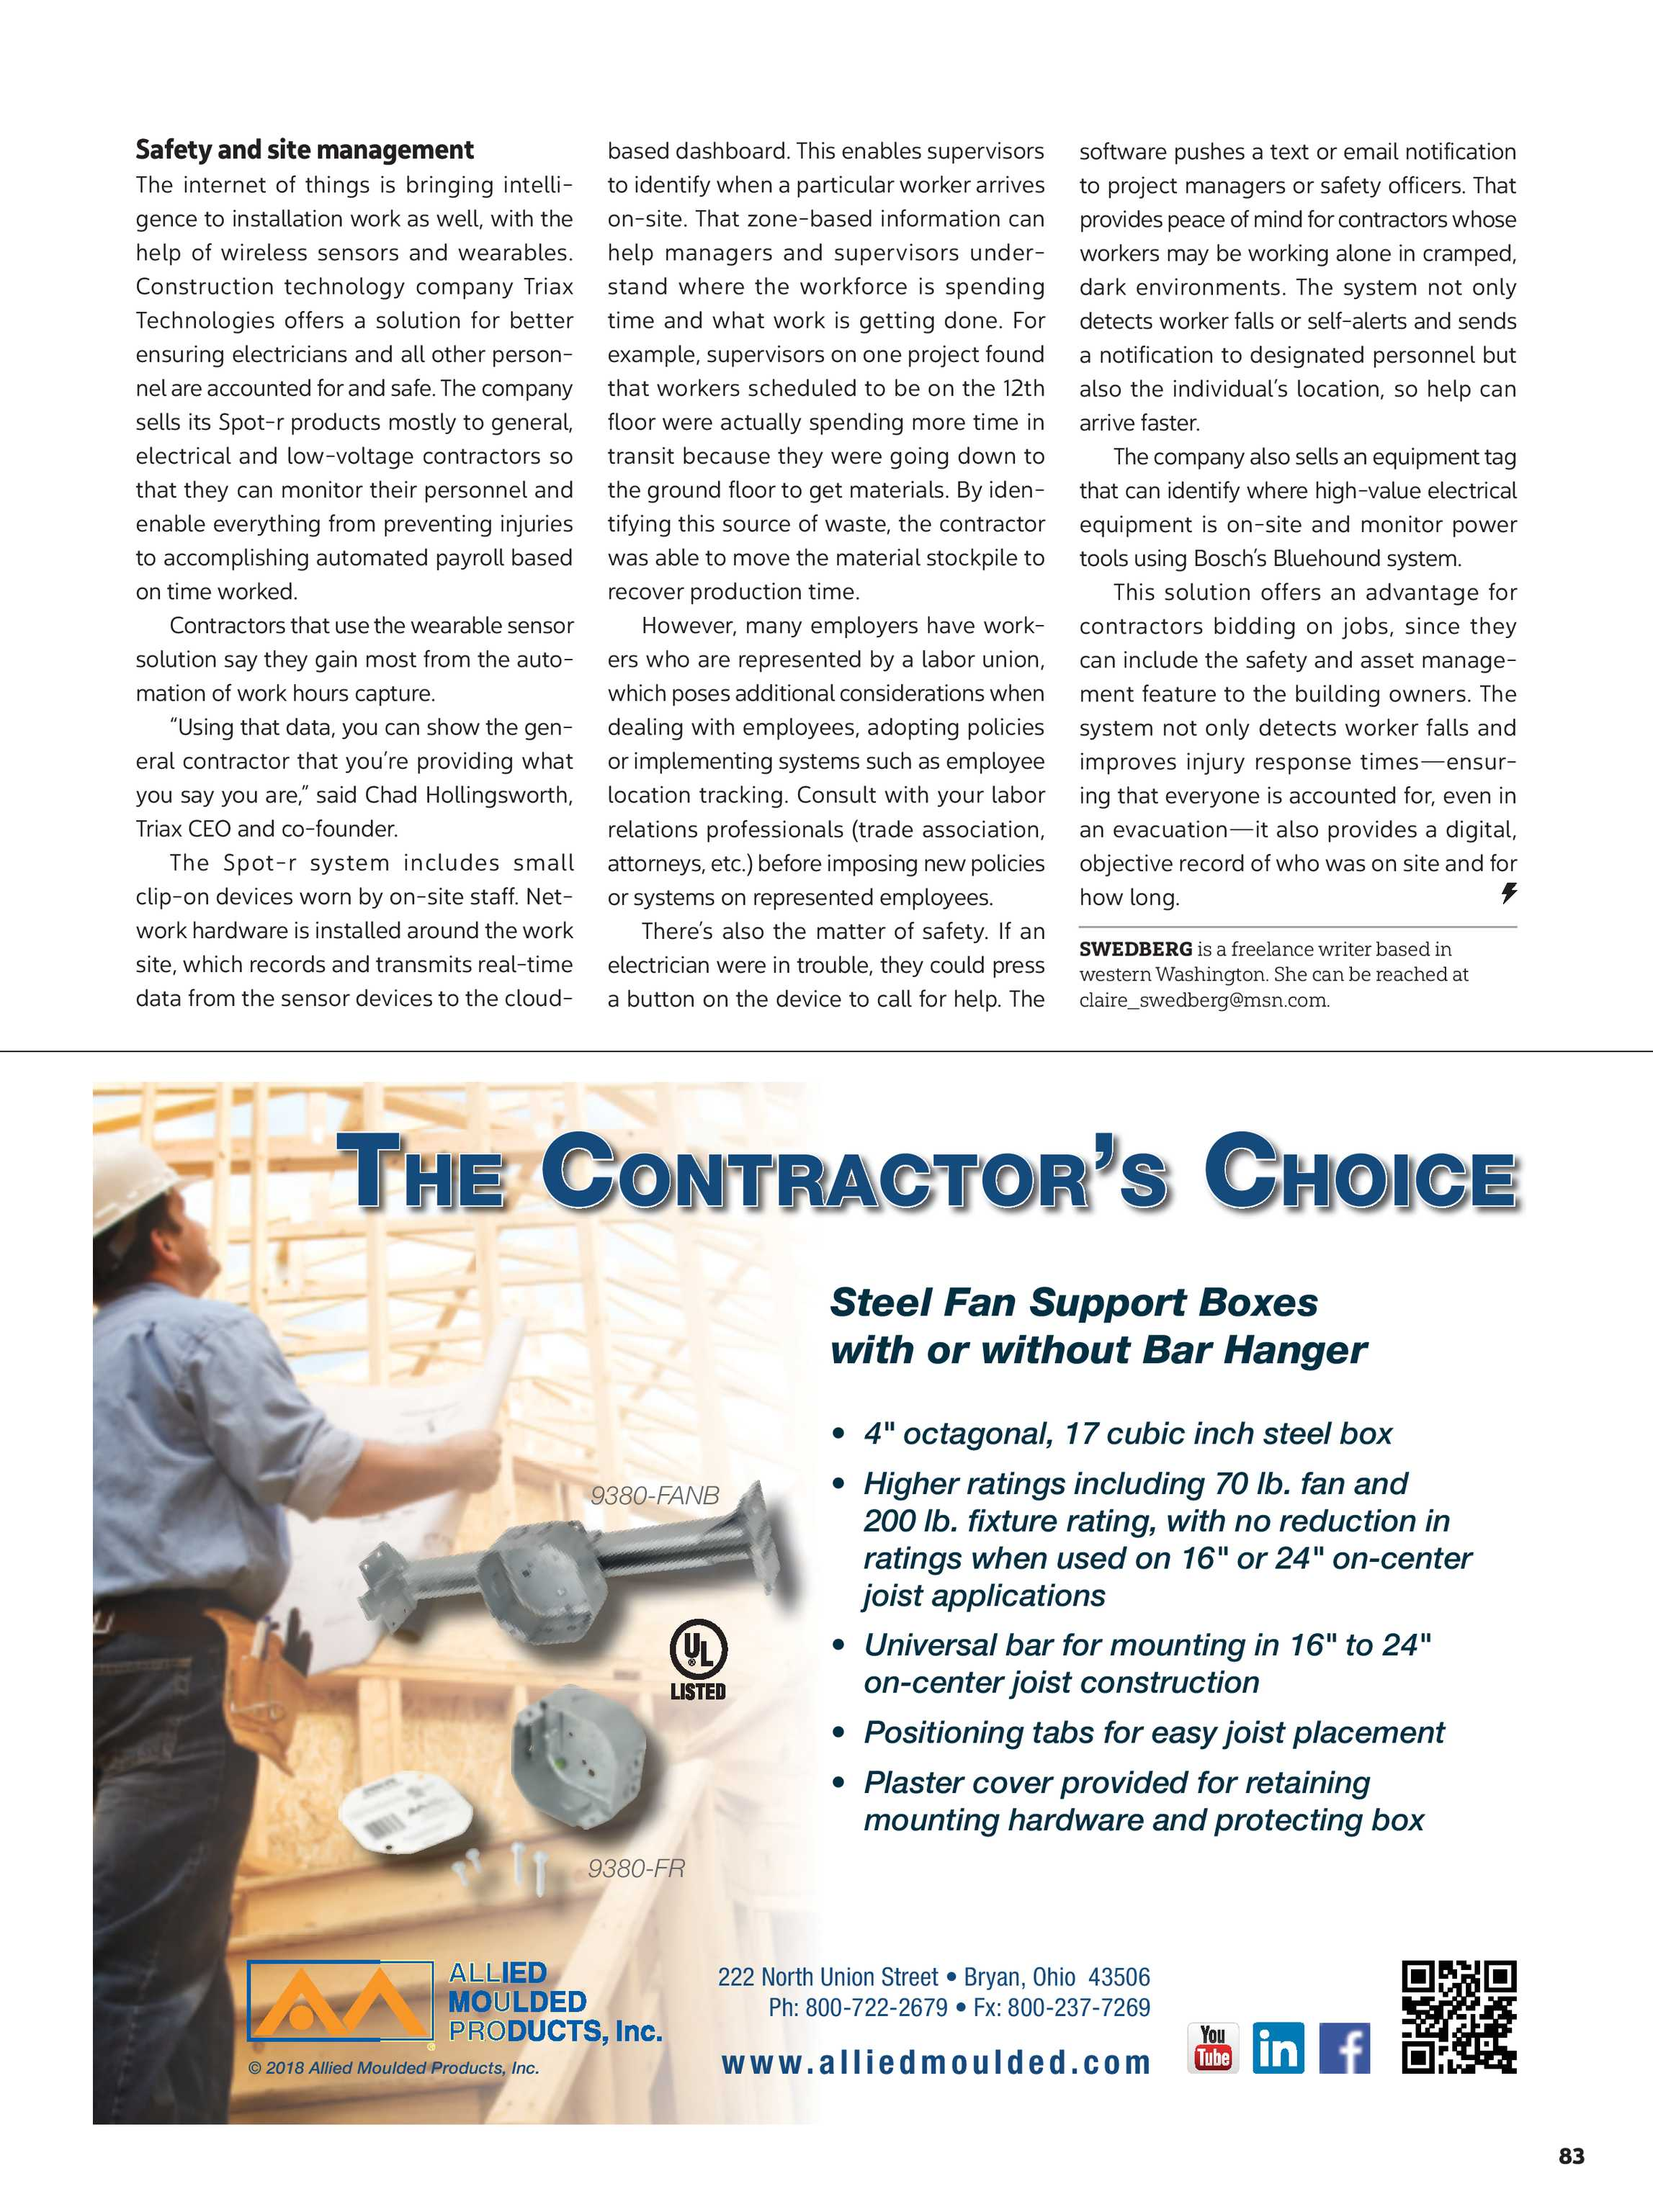 Electrical Contractor - September 2018 - page 84